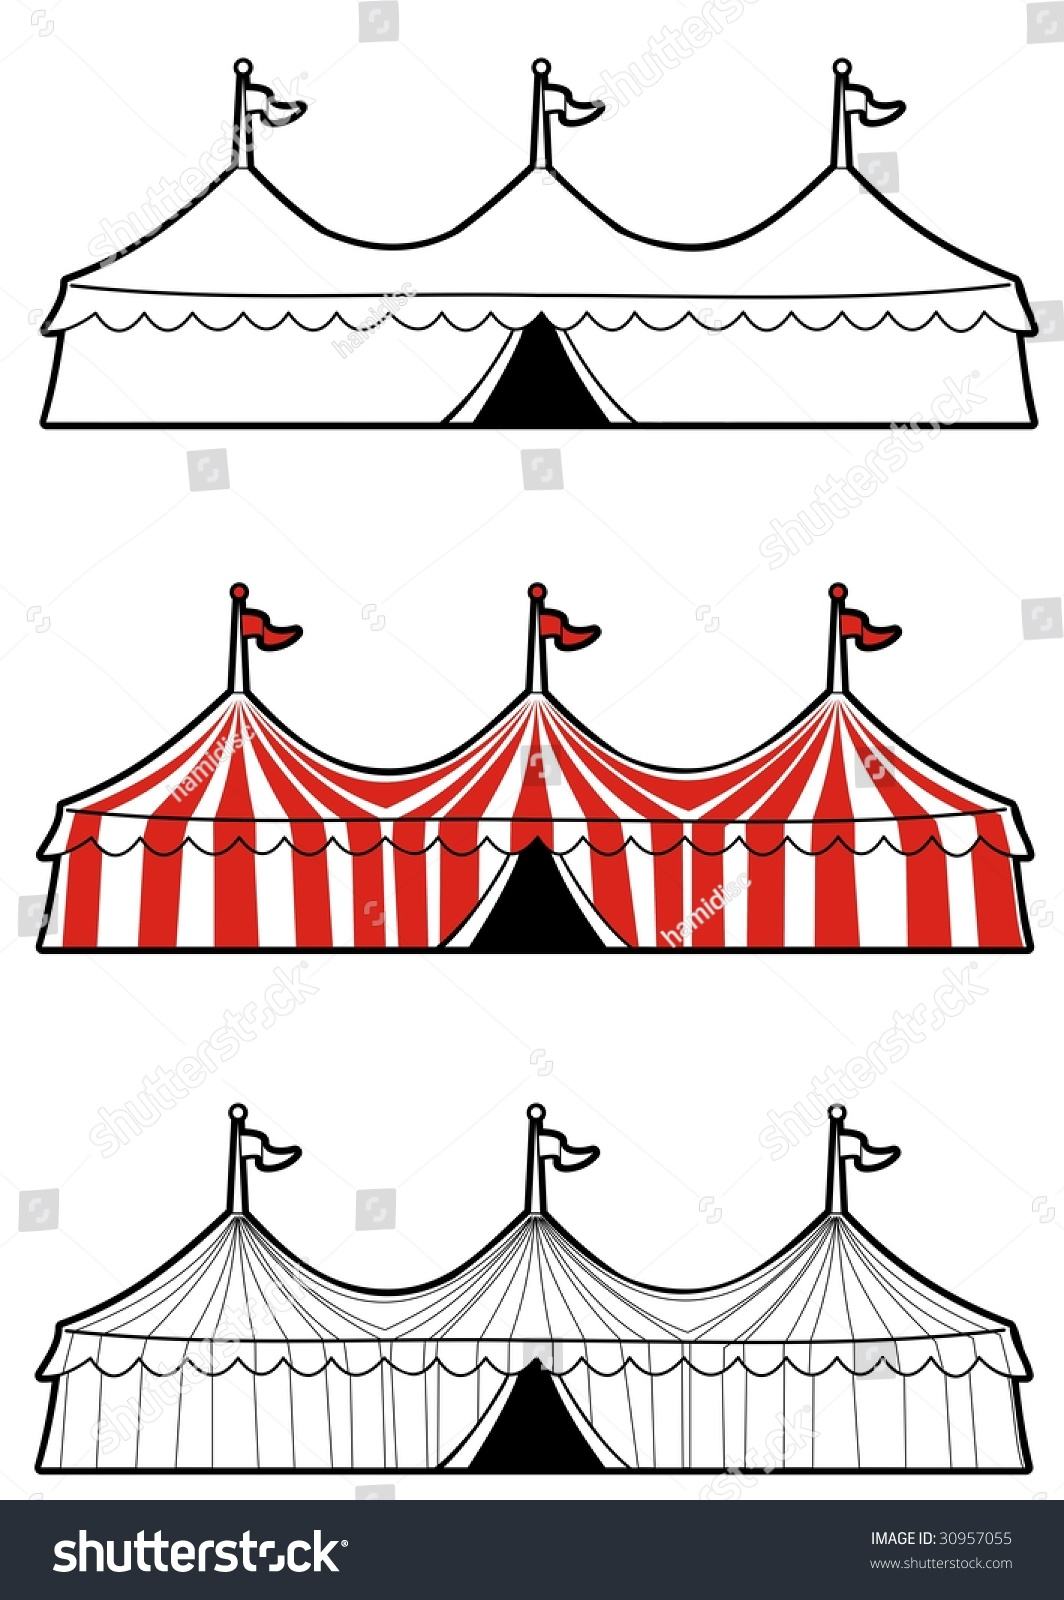 Illustration Three Ringed Circus Tent Color Stock Vector ...